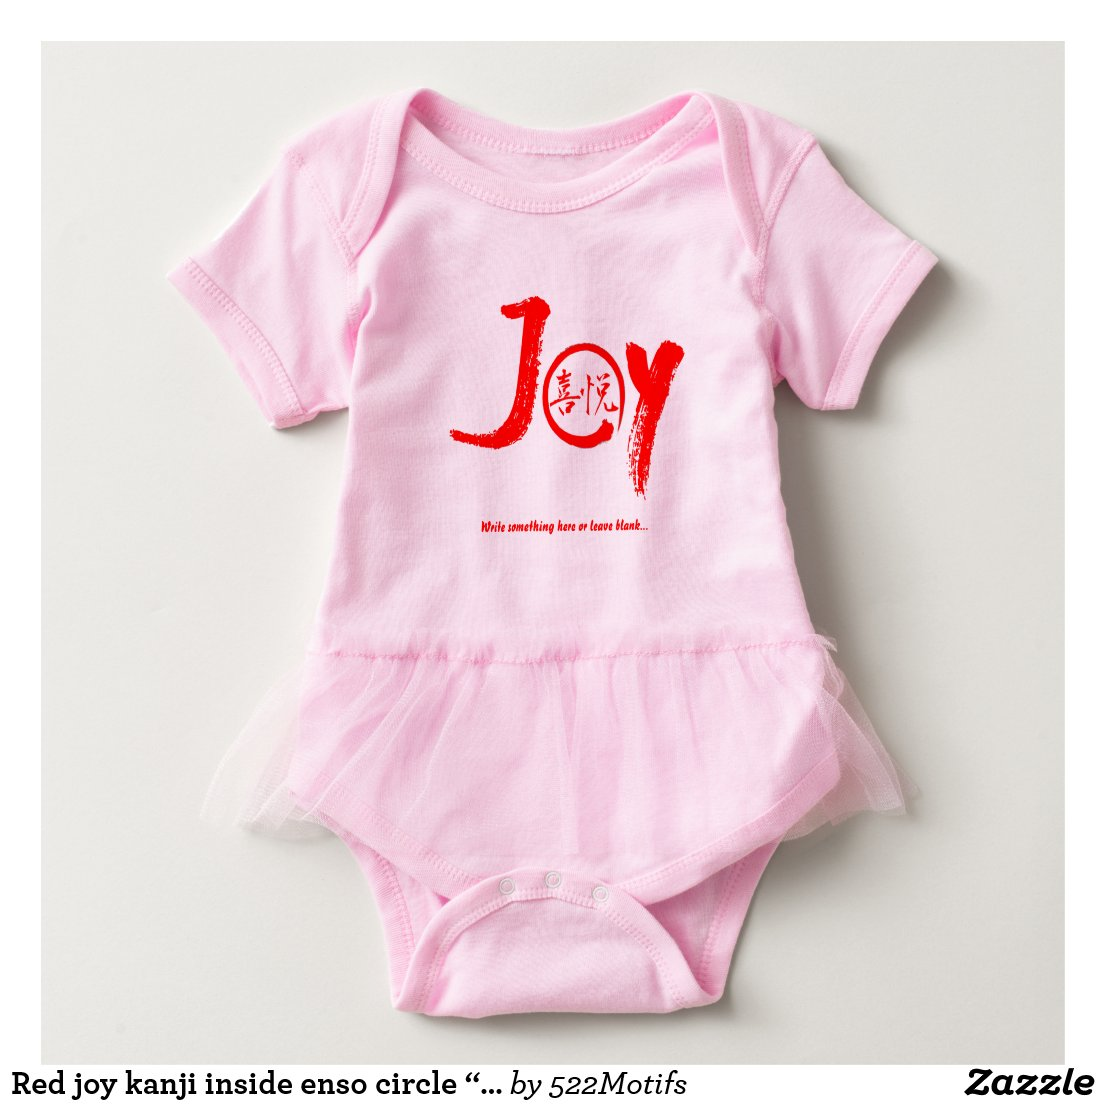 "Red joy kanji inside enso circle ""Joy"" tutu Baby Bodysuit"